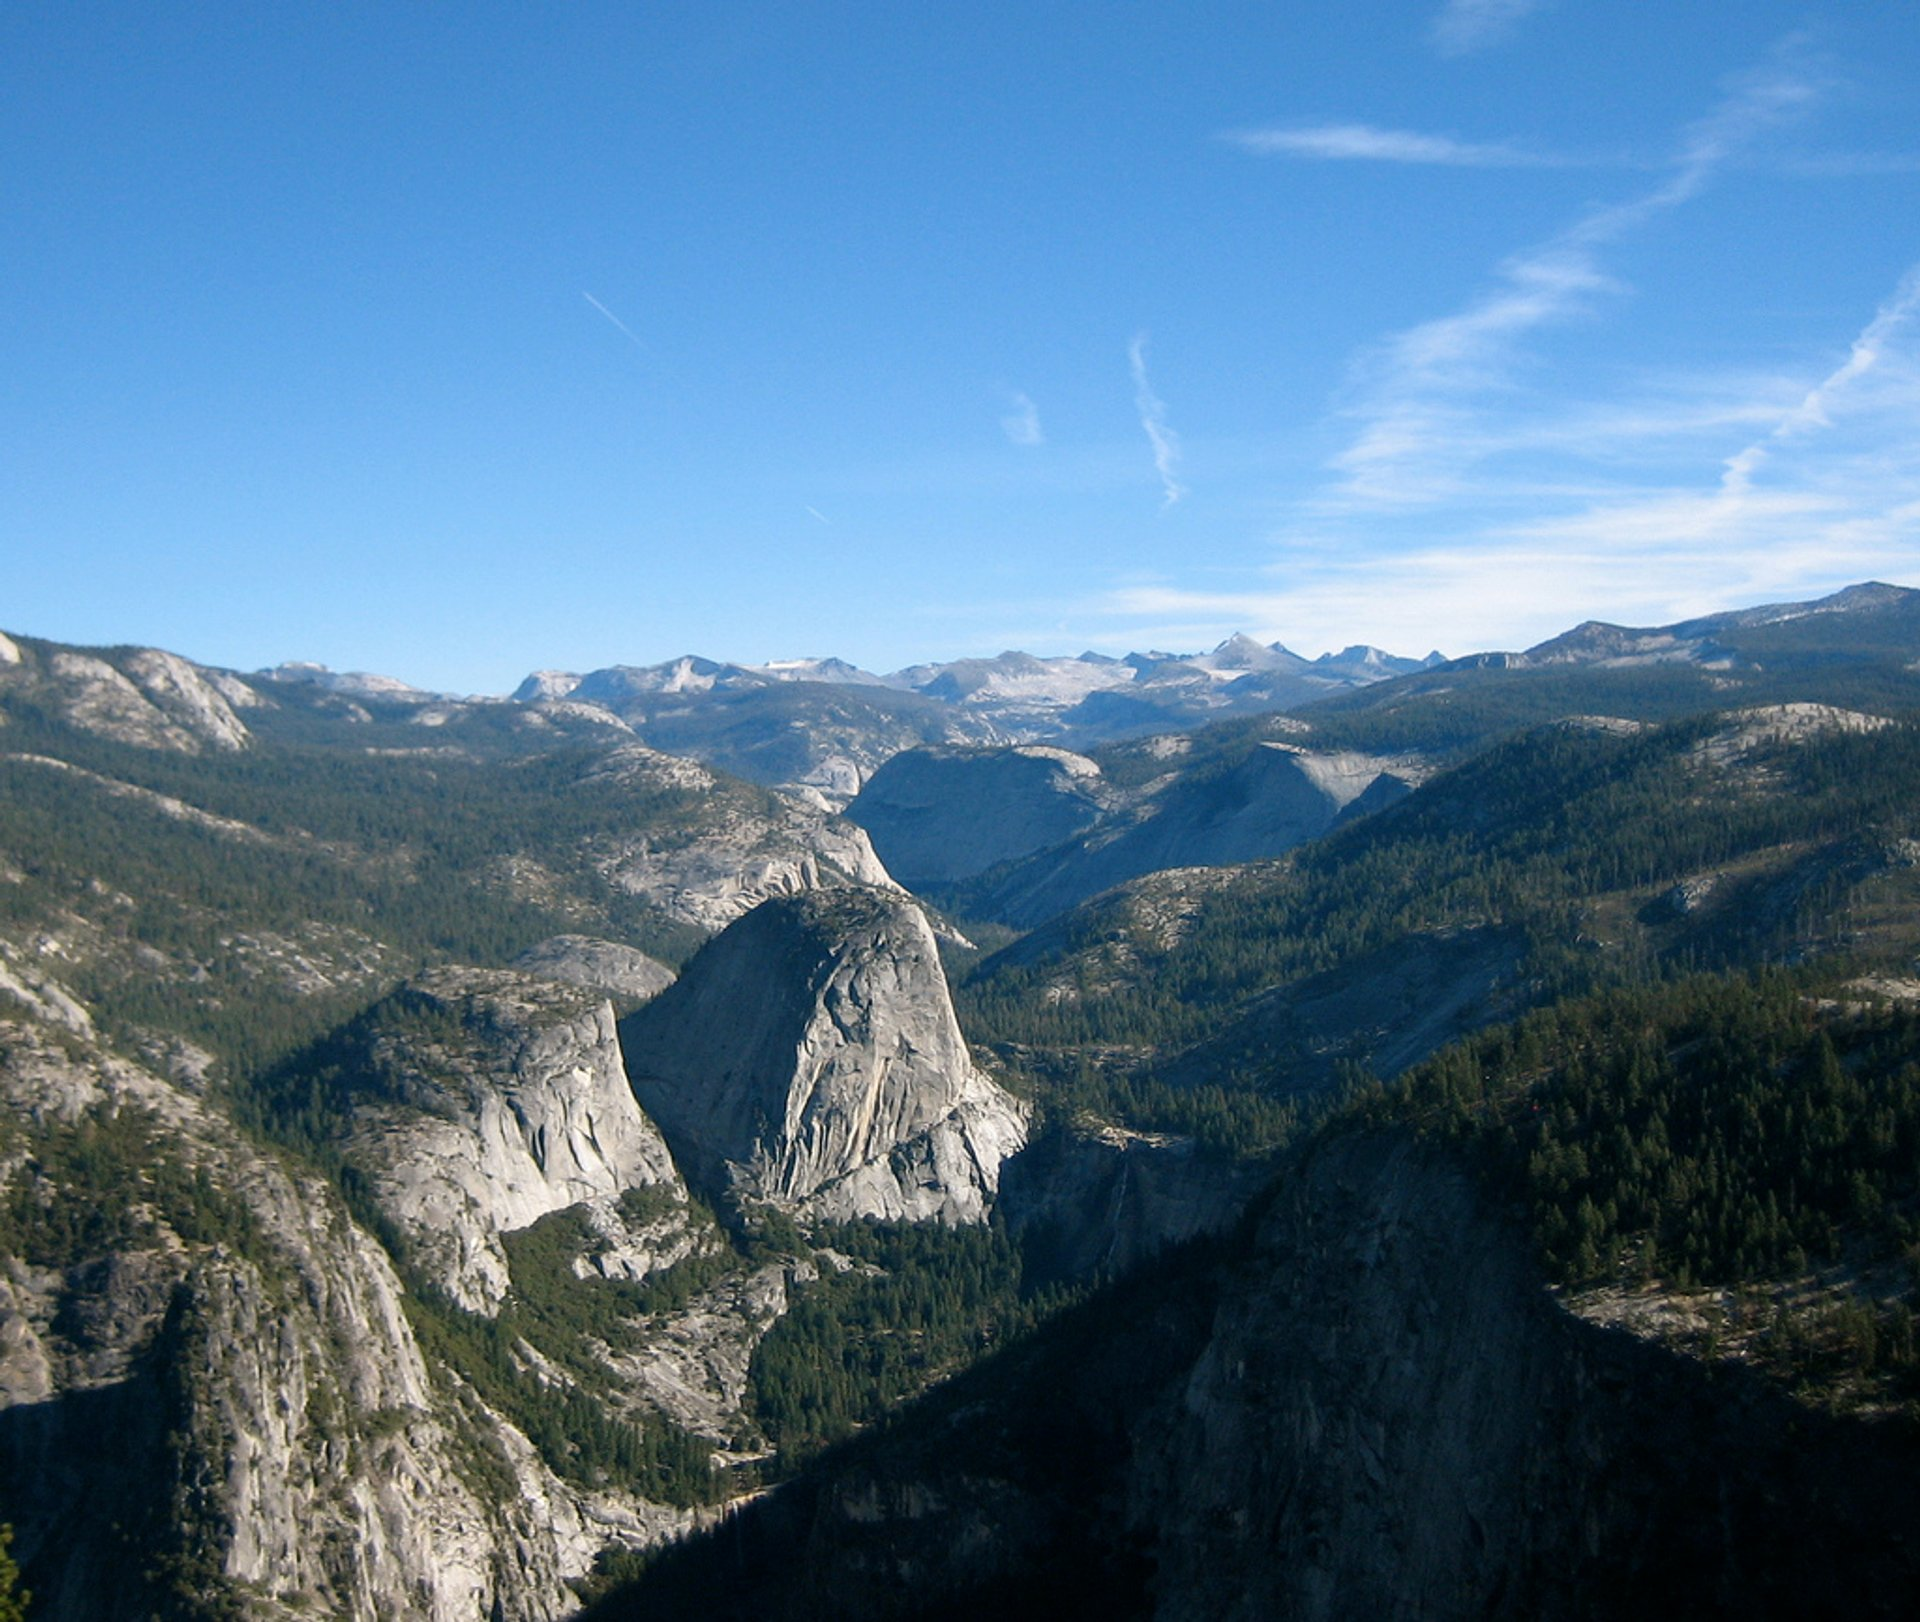 Little Yosemite Valley in Yosemite 2020 - Best Time